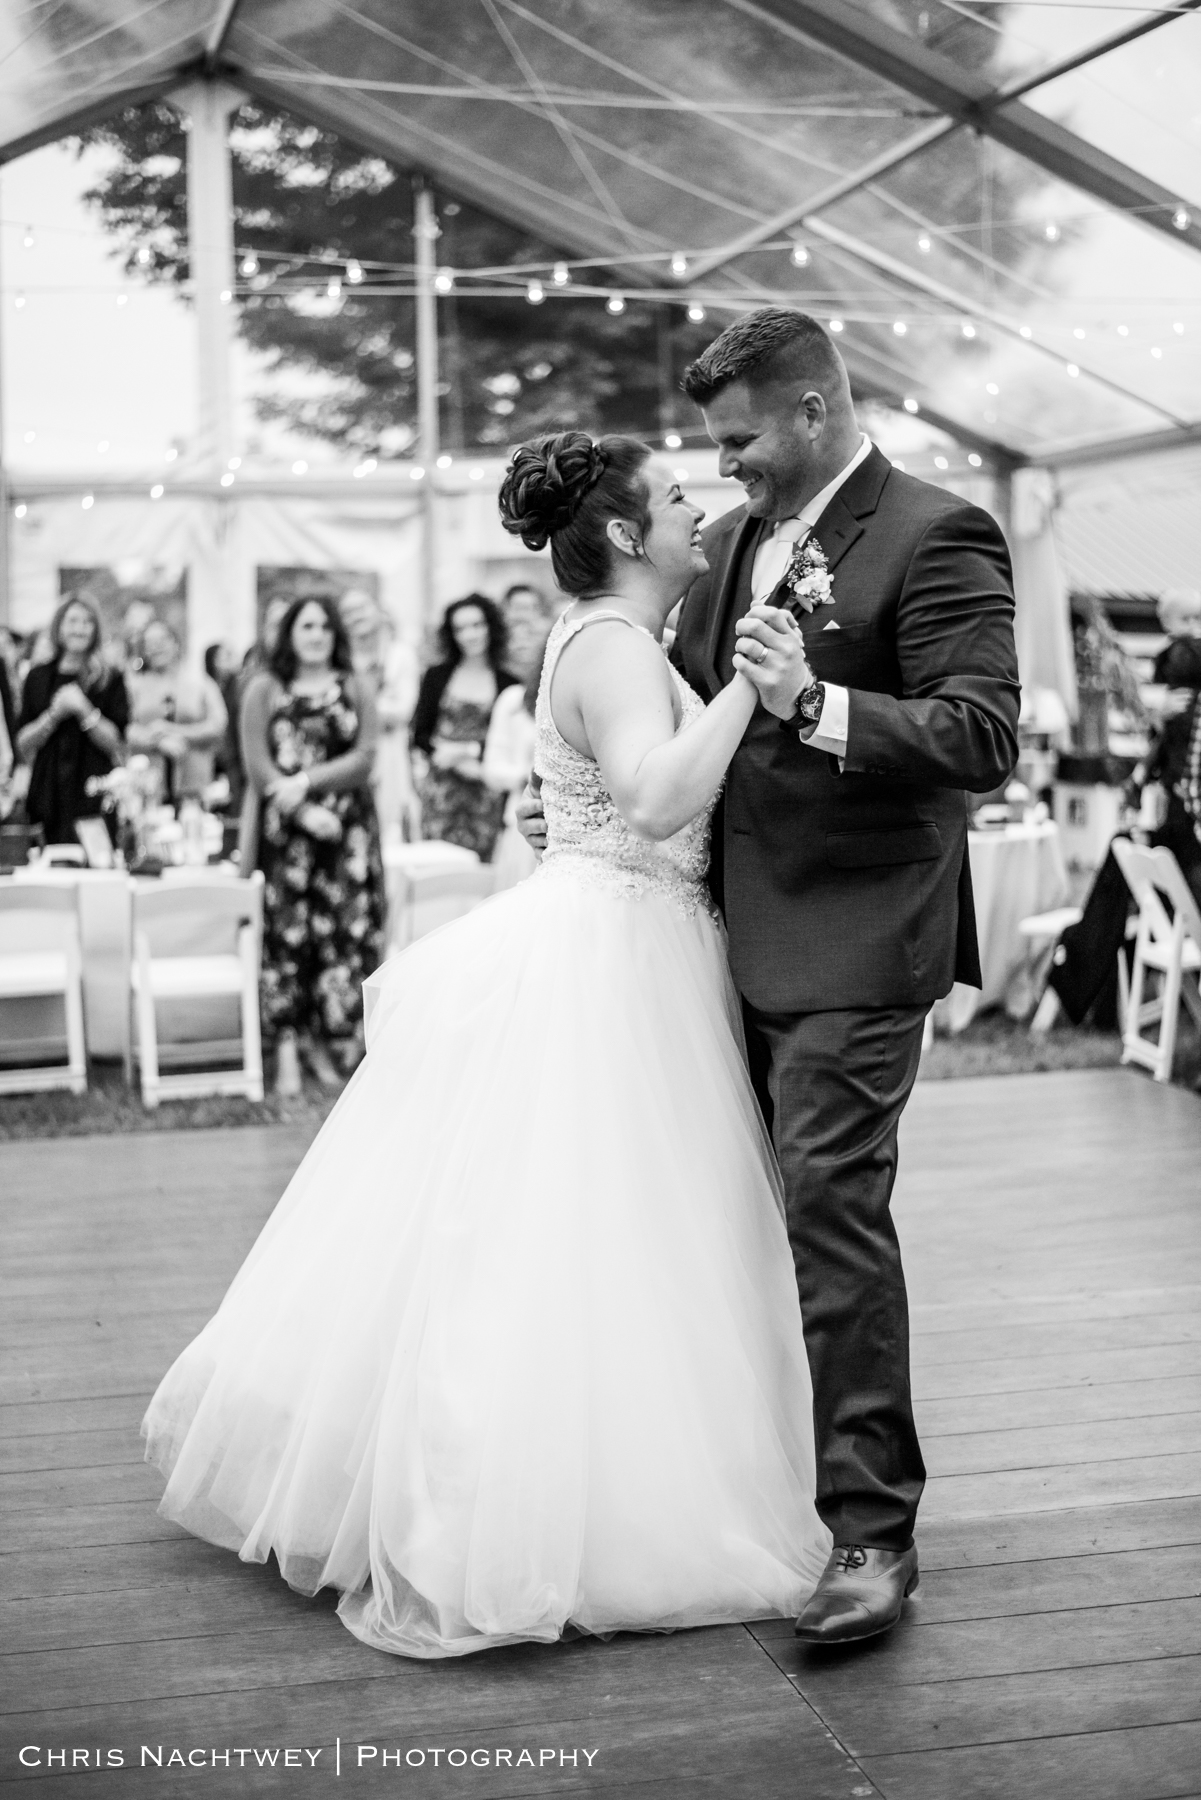 wedding-photographers-connecticut-affordable-chris-nachtwey-photography-2019-24.jpg